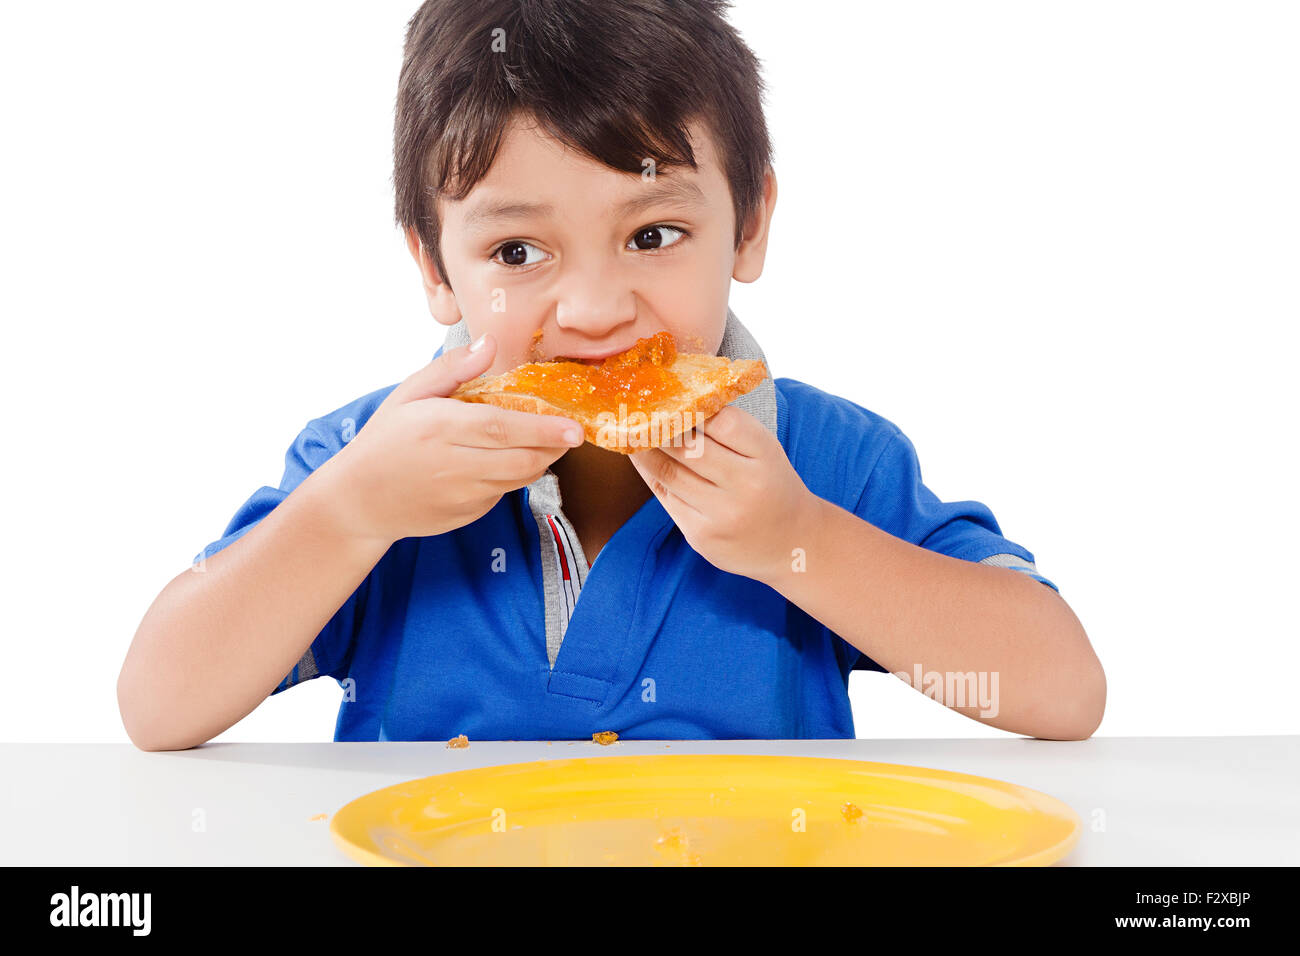 1 indian kid boy Breakfast eating Bread Stock Photo ...